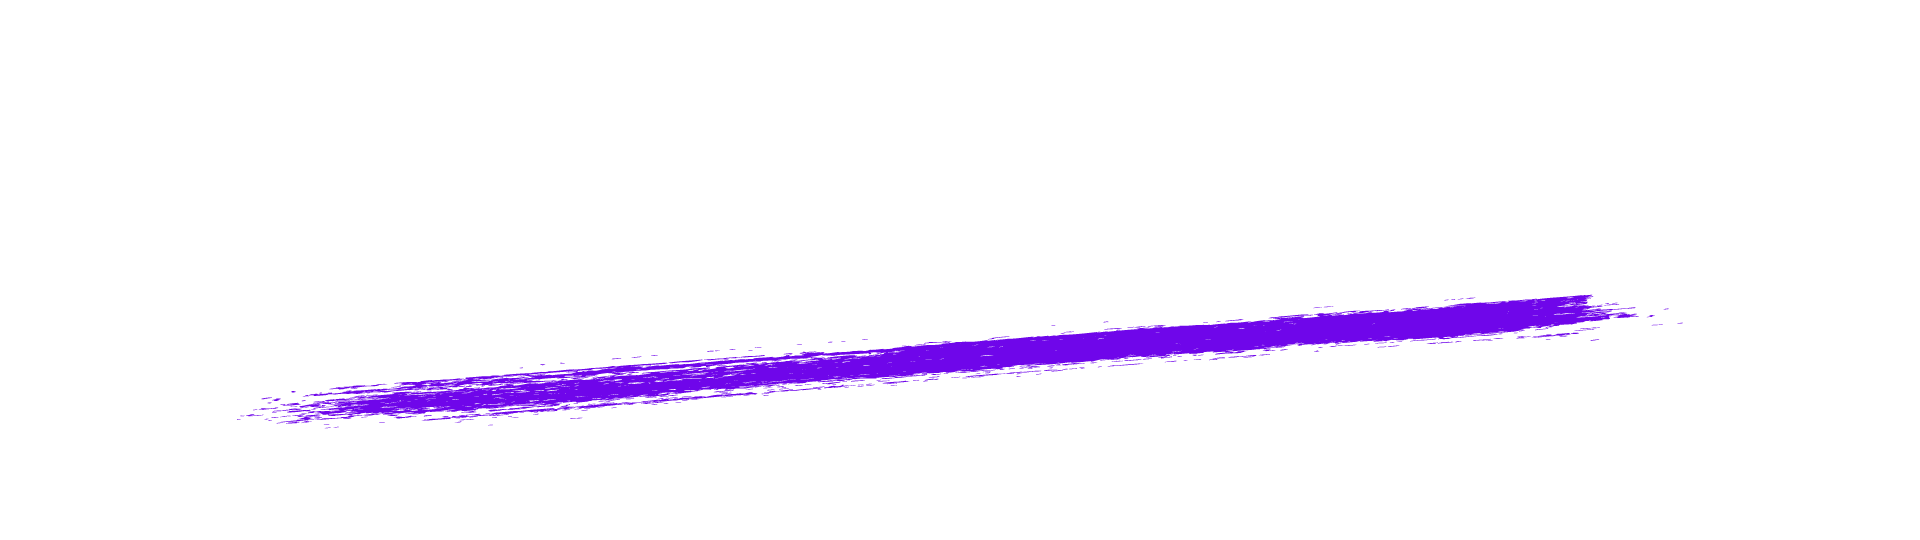 coachapp.web_.header